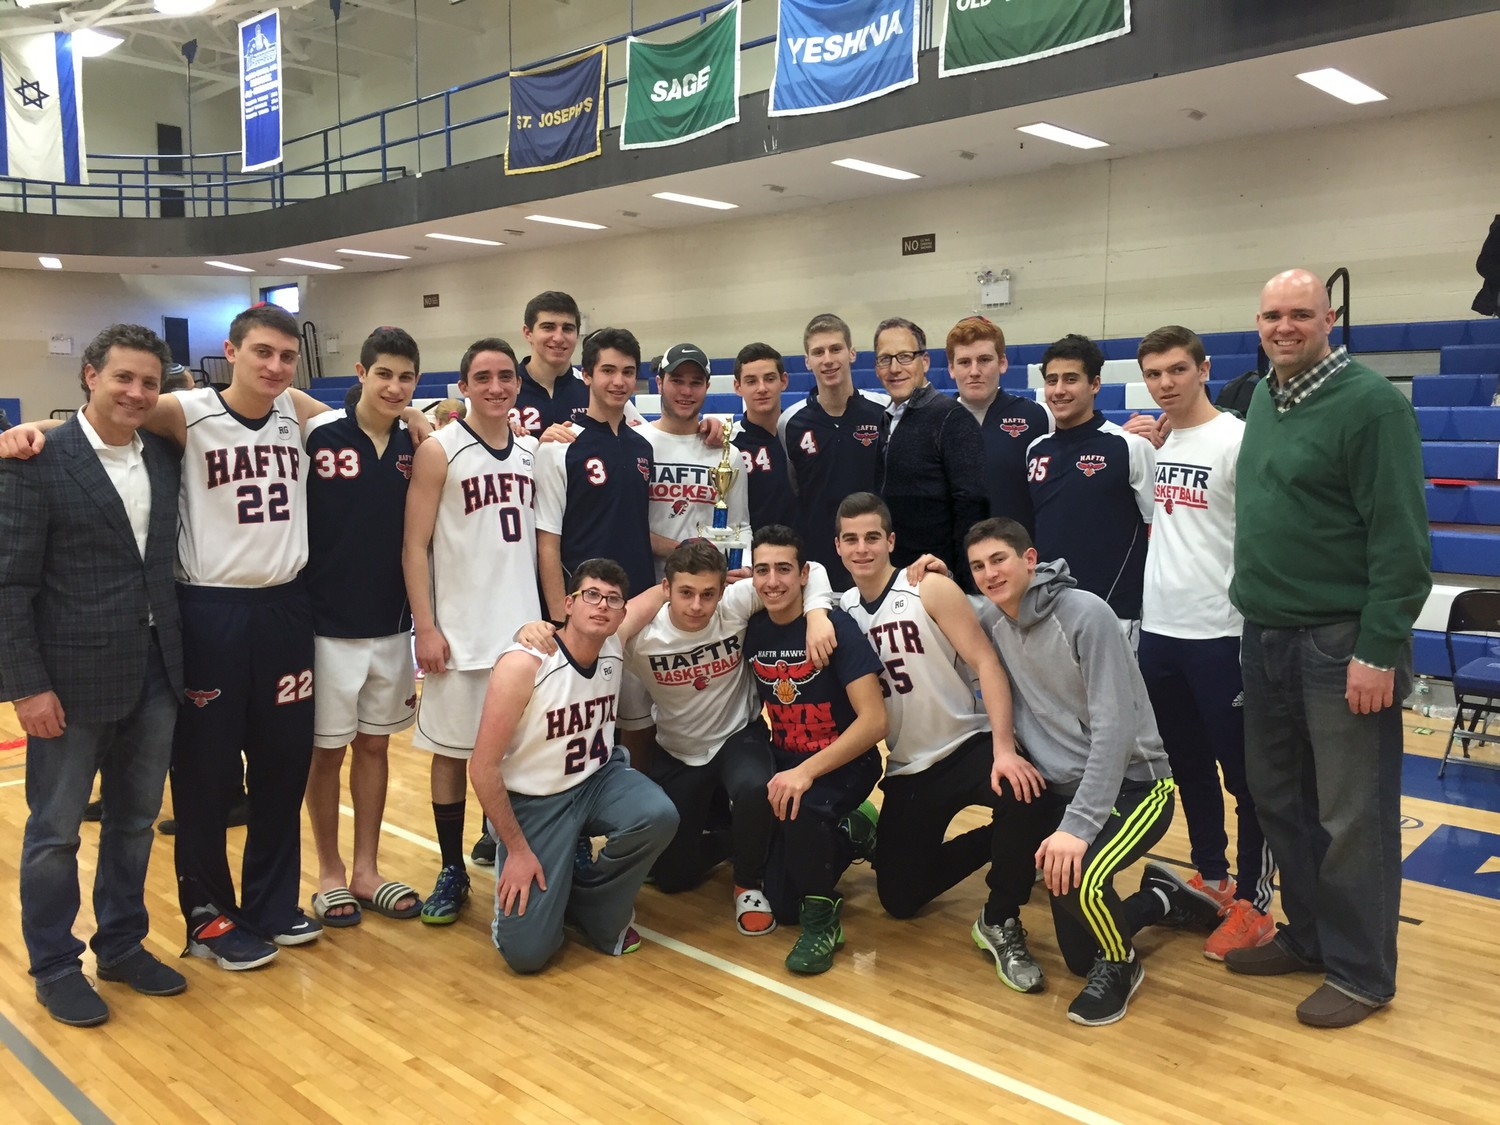 HAFTR's sports program has also been successful. The undefeated boys basketball team captured the Metropolitan Yeshiva League title in 2016. Athletic Director Joey Hoenig is on the far left. On the far right is coach Scott Ferguson.